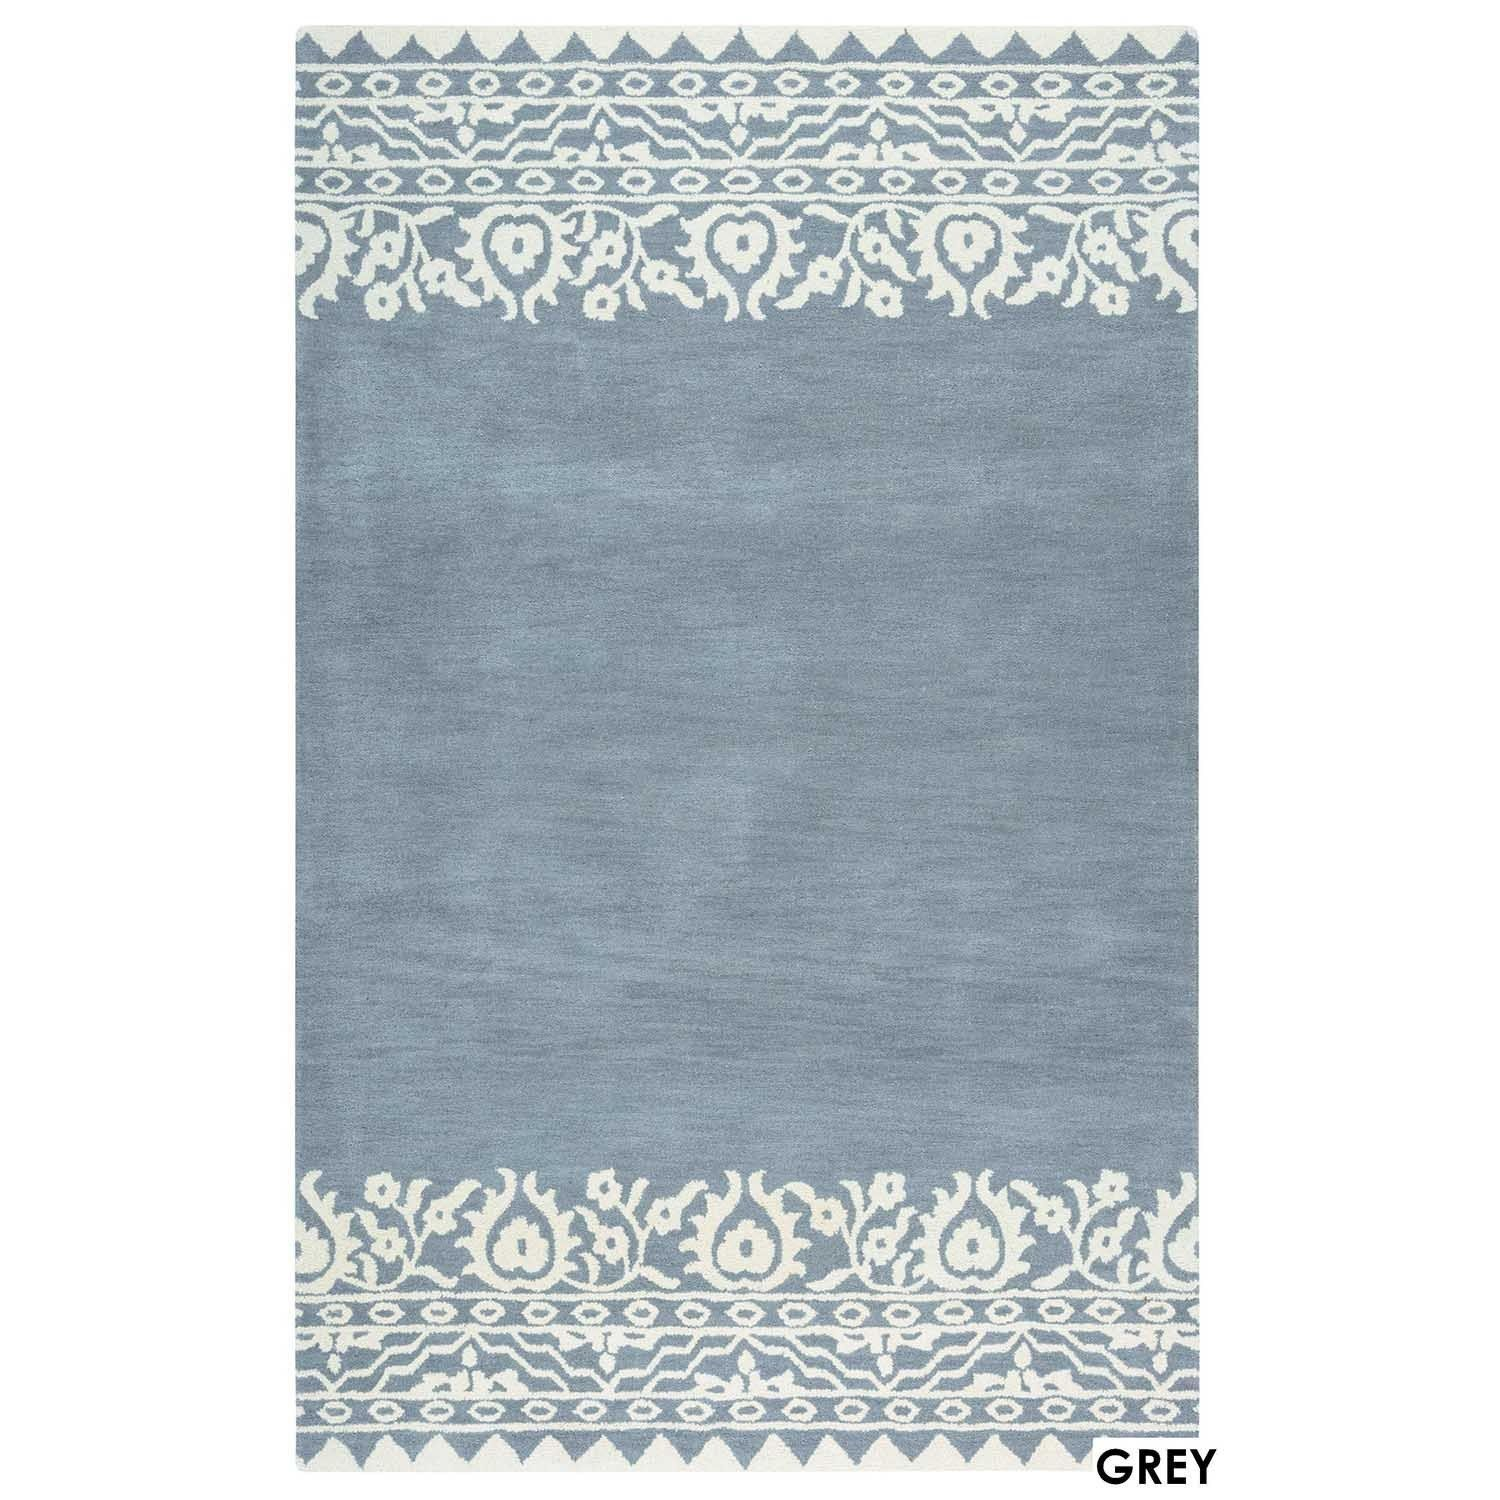 Lourdes Collection Navy Solid Area Rug 9 X 12 9 X 12 Area Rugs Solid Area Rugs Wool Area Rugs